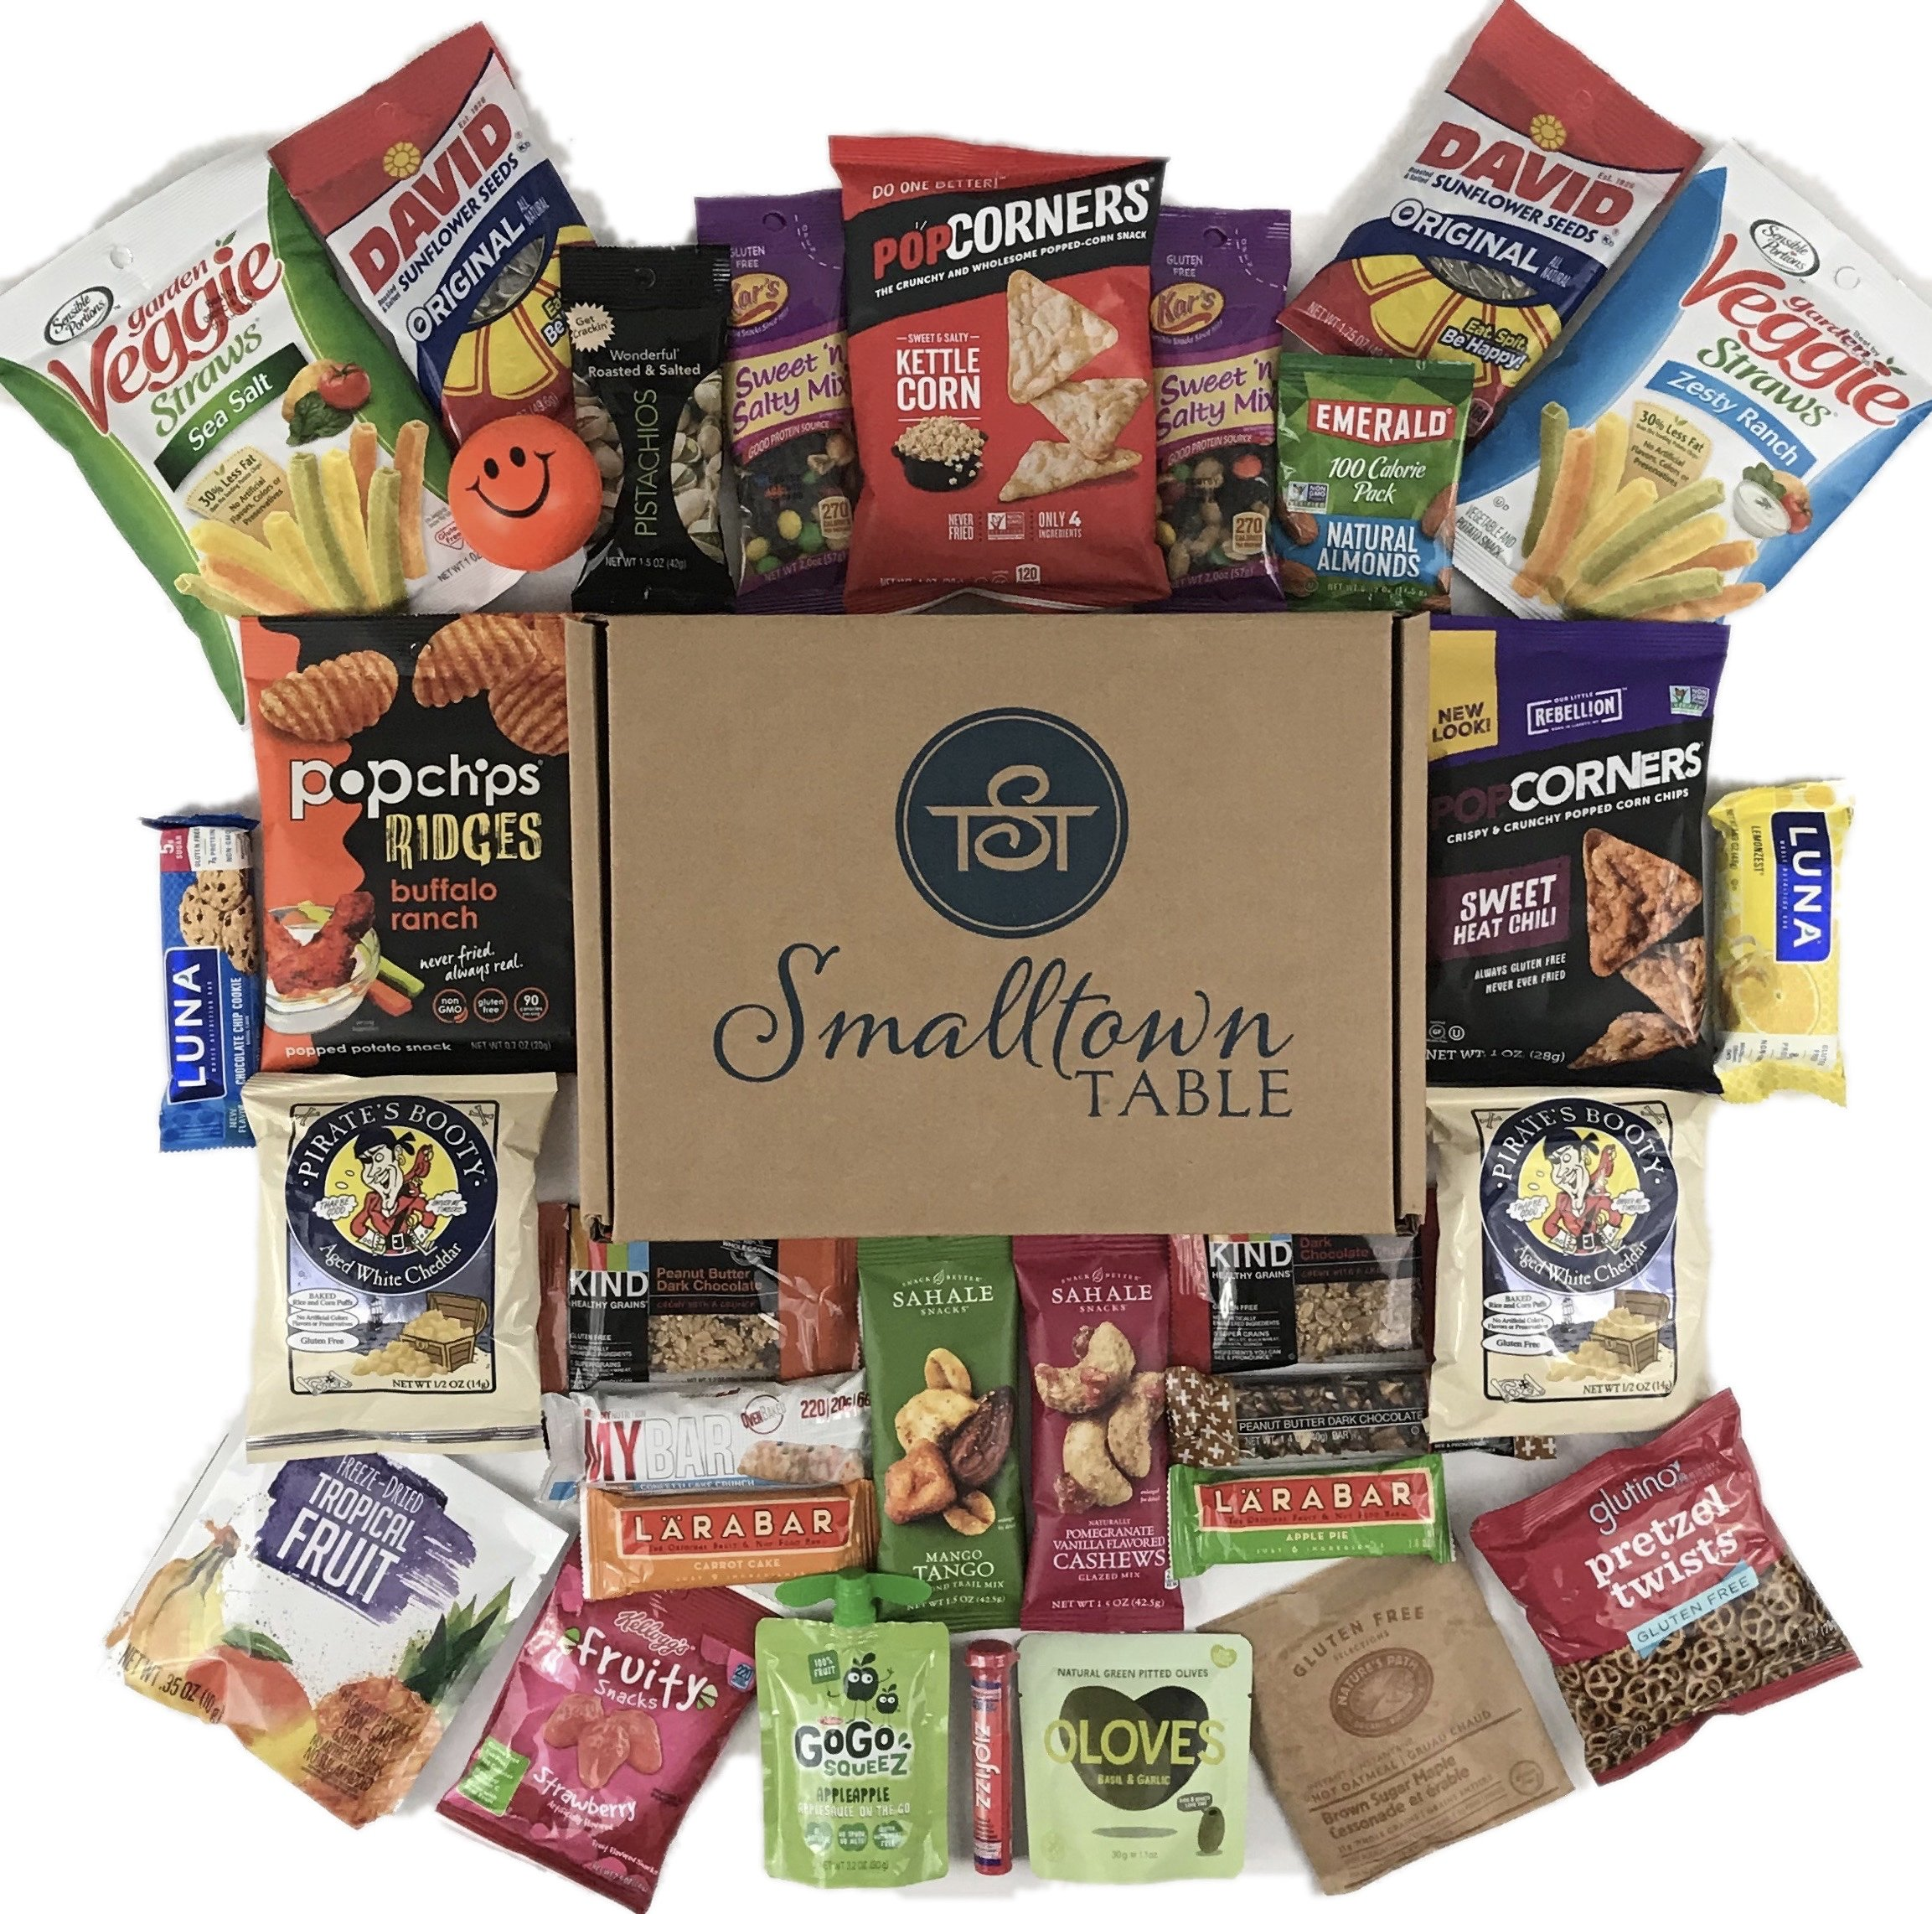 Gluten Free Snacks Care Package - GMO FREE Premium Snack Sampler Gift Box Healthy Bars, Chips, Nuts, Quality To Go Food for Office and Students (30 Count) by Smalltown Table